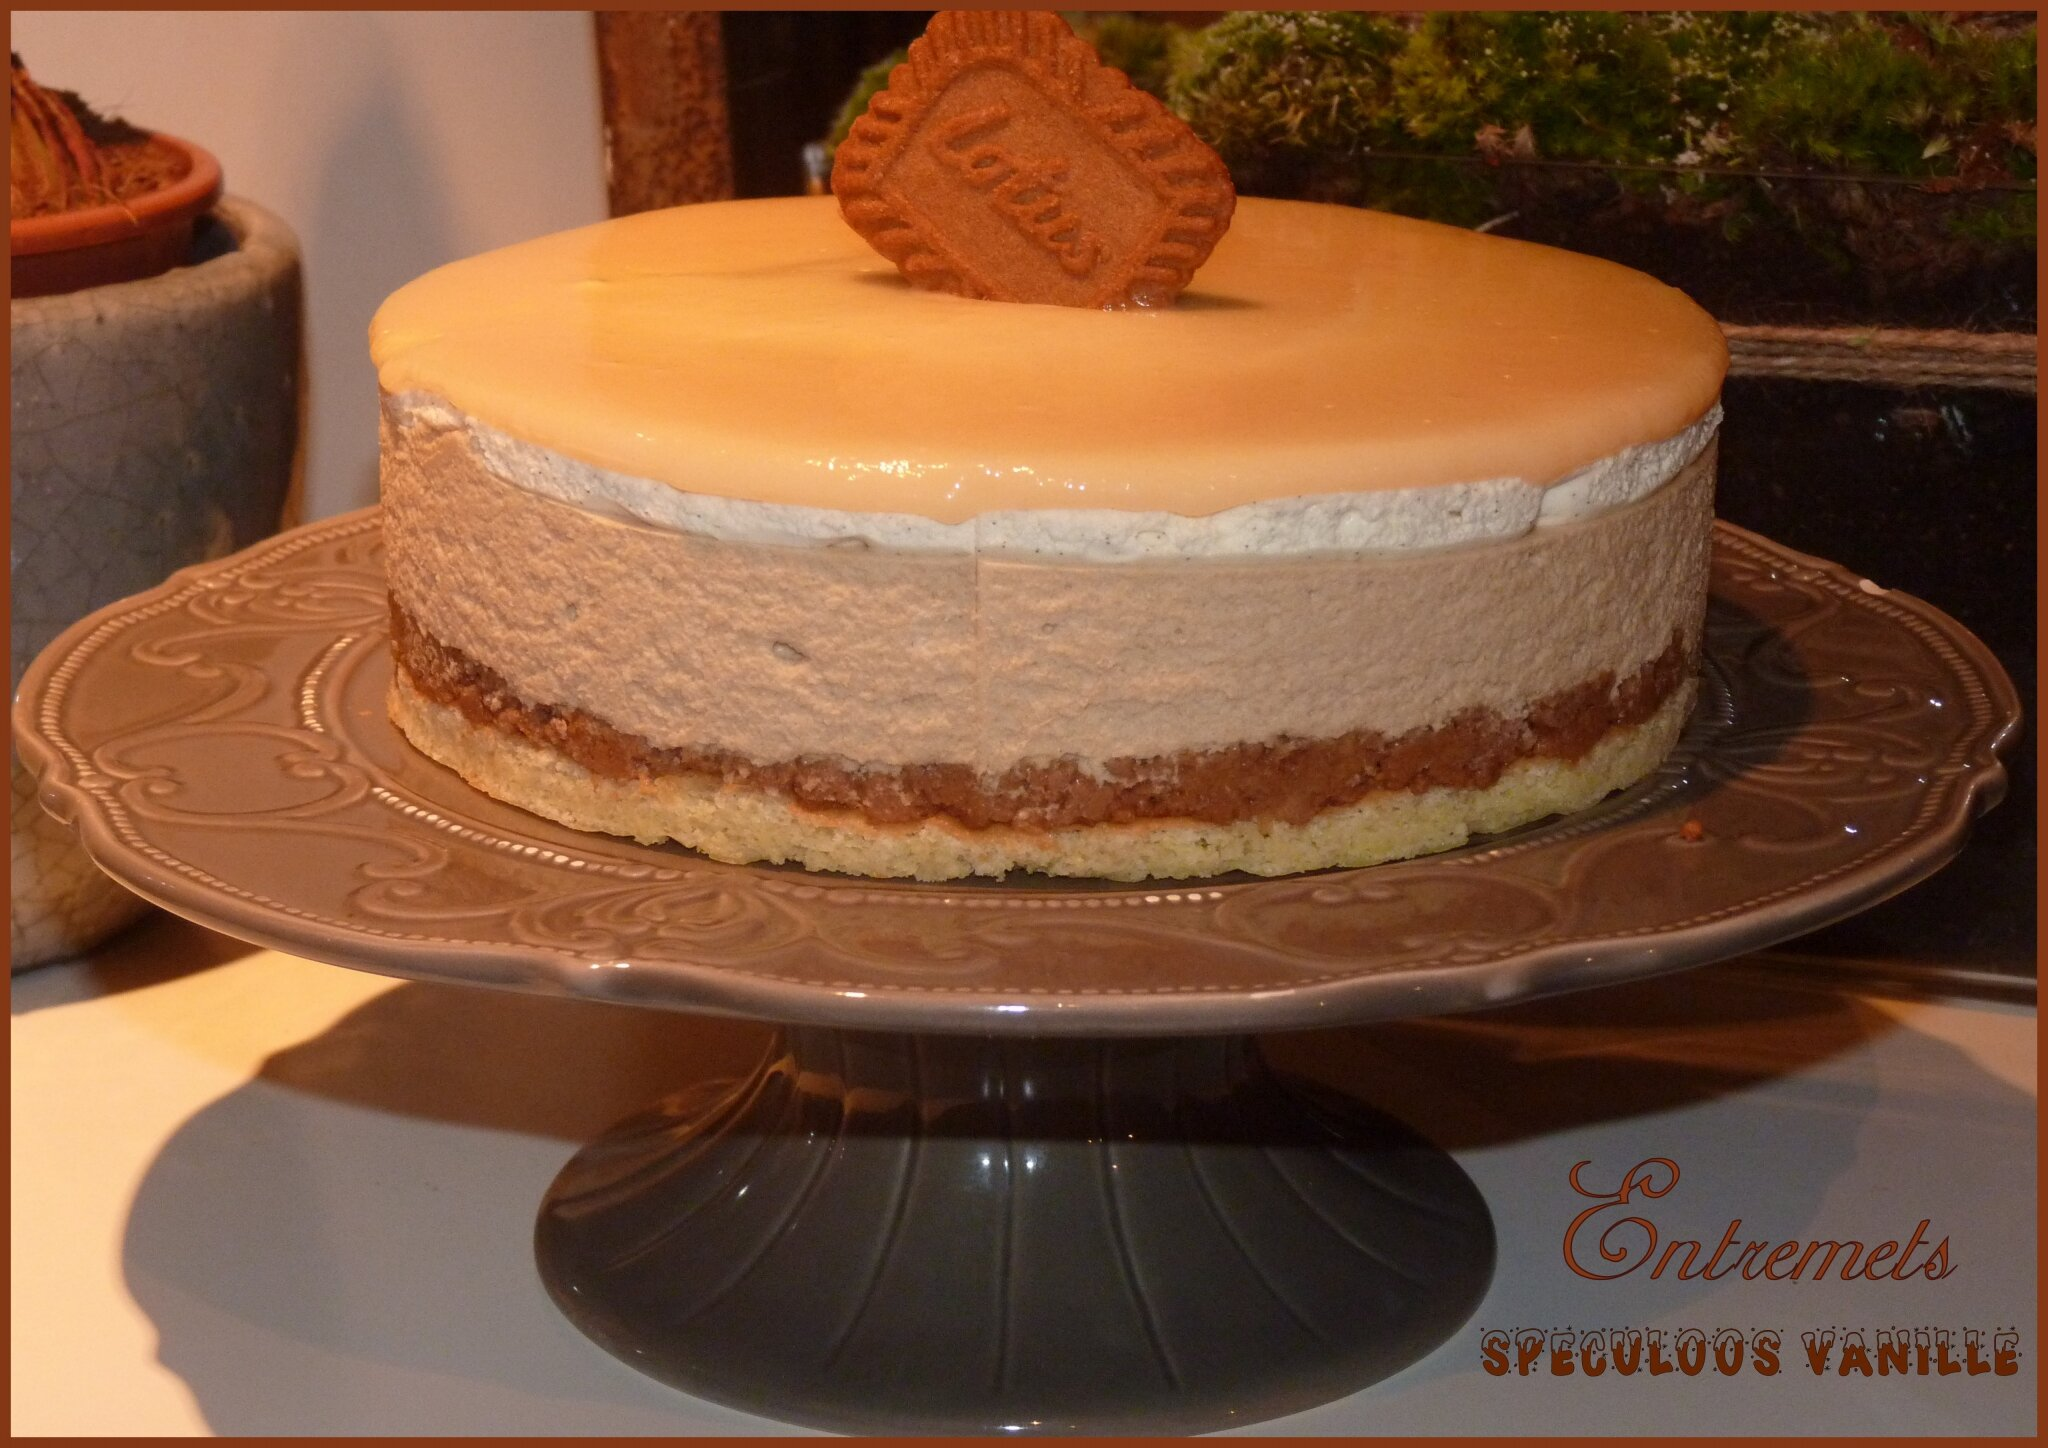 Enttremets speculoos vanille